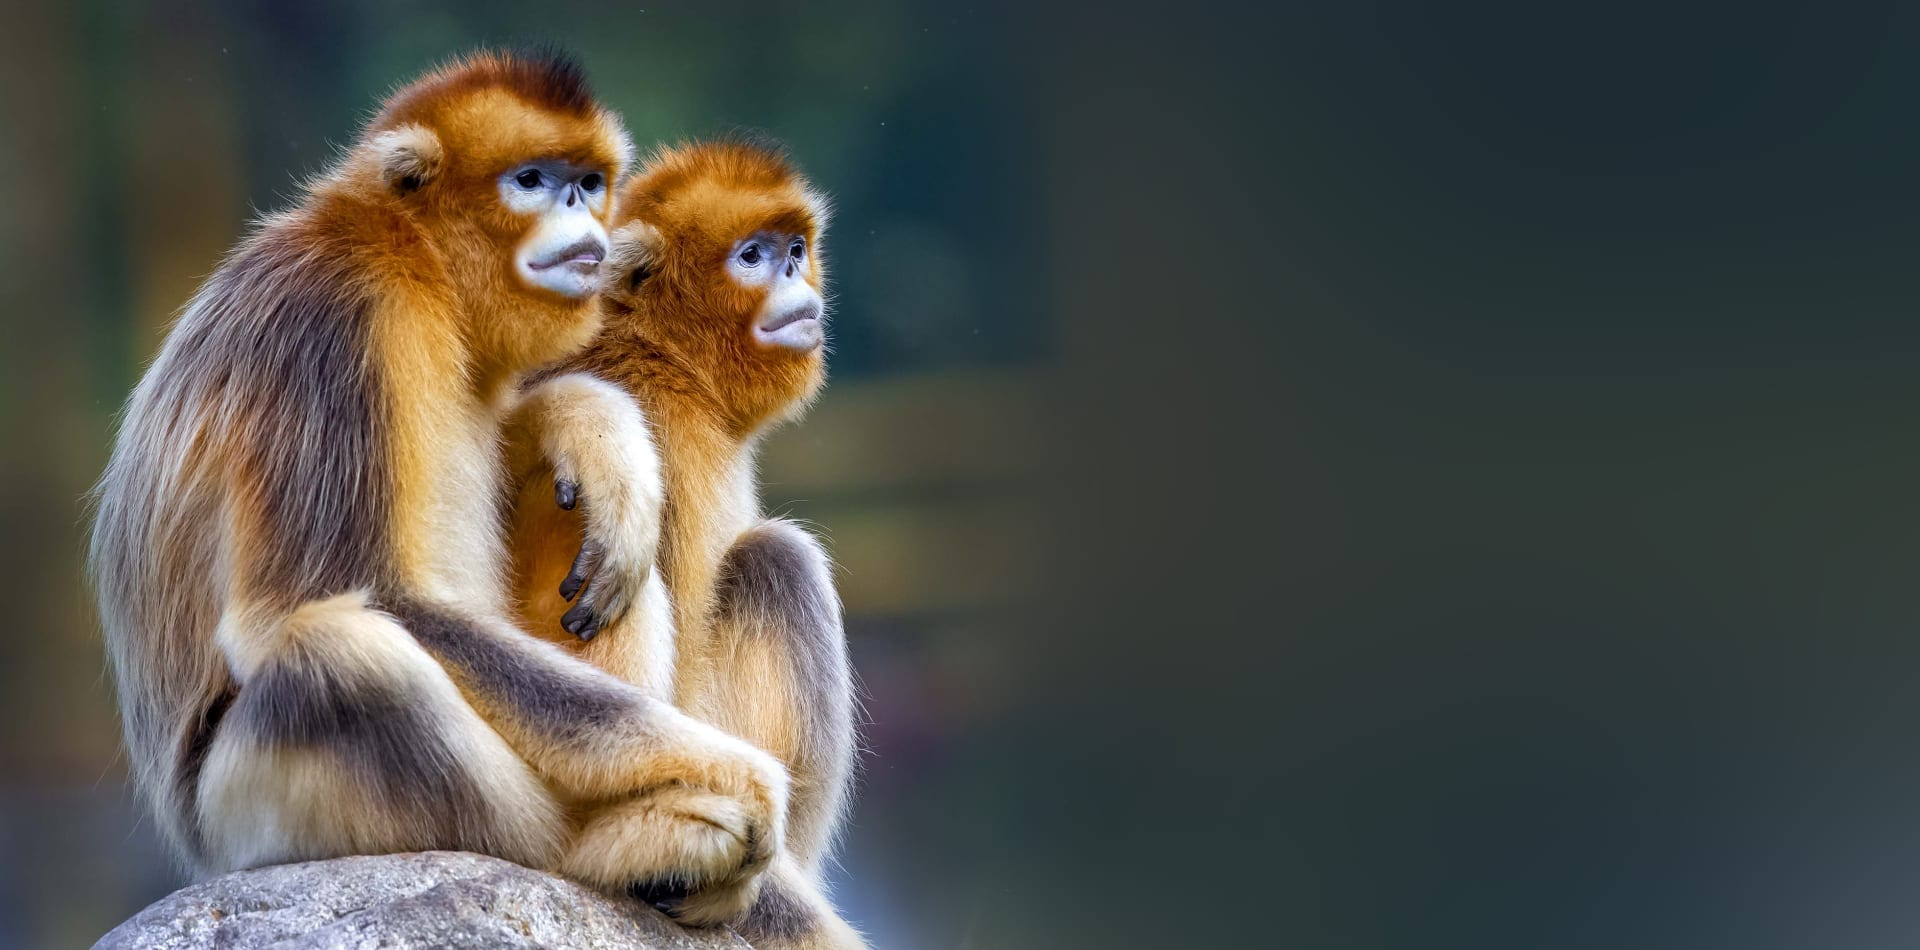 Snub nosed monkeys in China